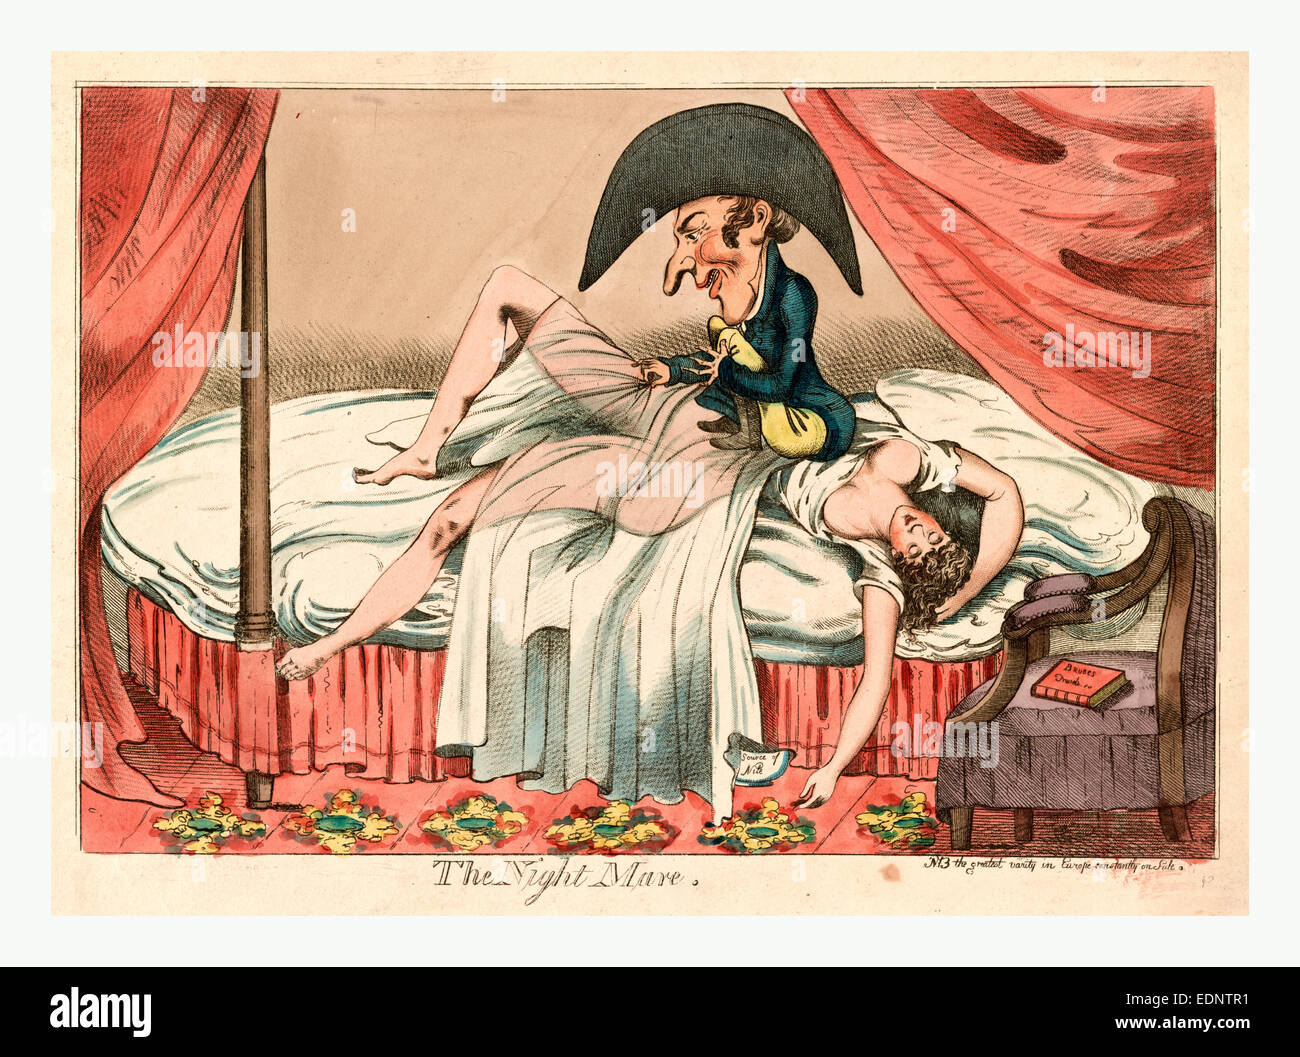 1790, a scantily clad woman asleep on a bed, a little man sitting on her  chest